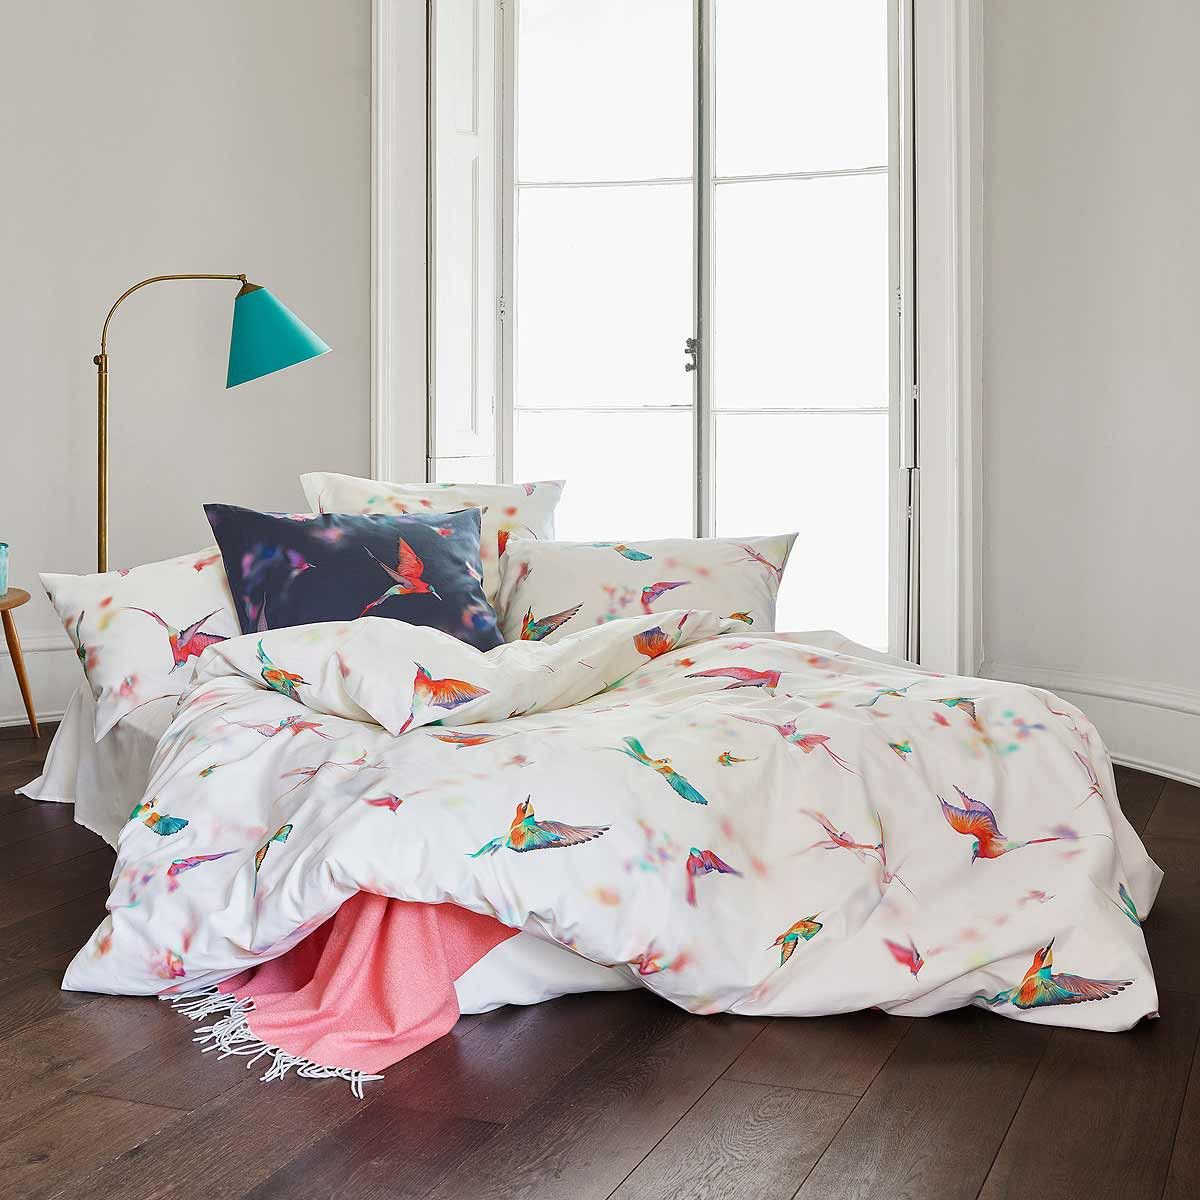 Luxus Bettwäsche Lani Satin Schlossberg Super King Duvet Covers Full Duvet Cover